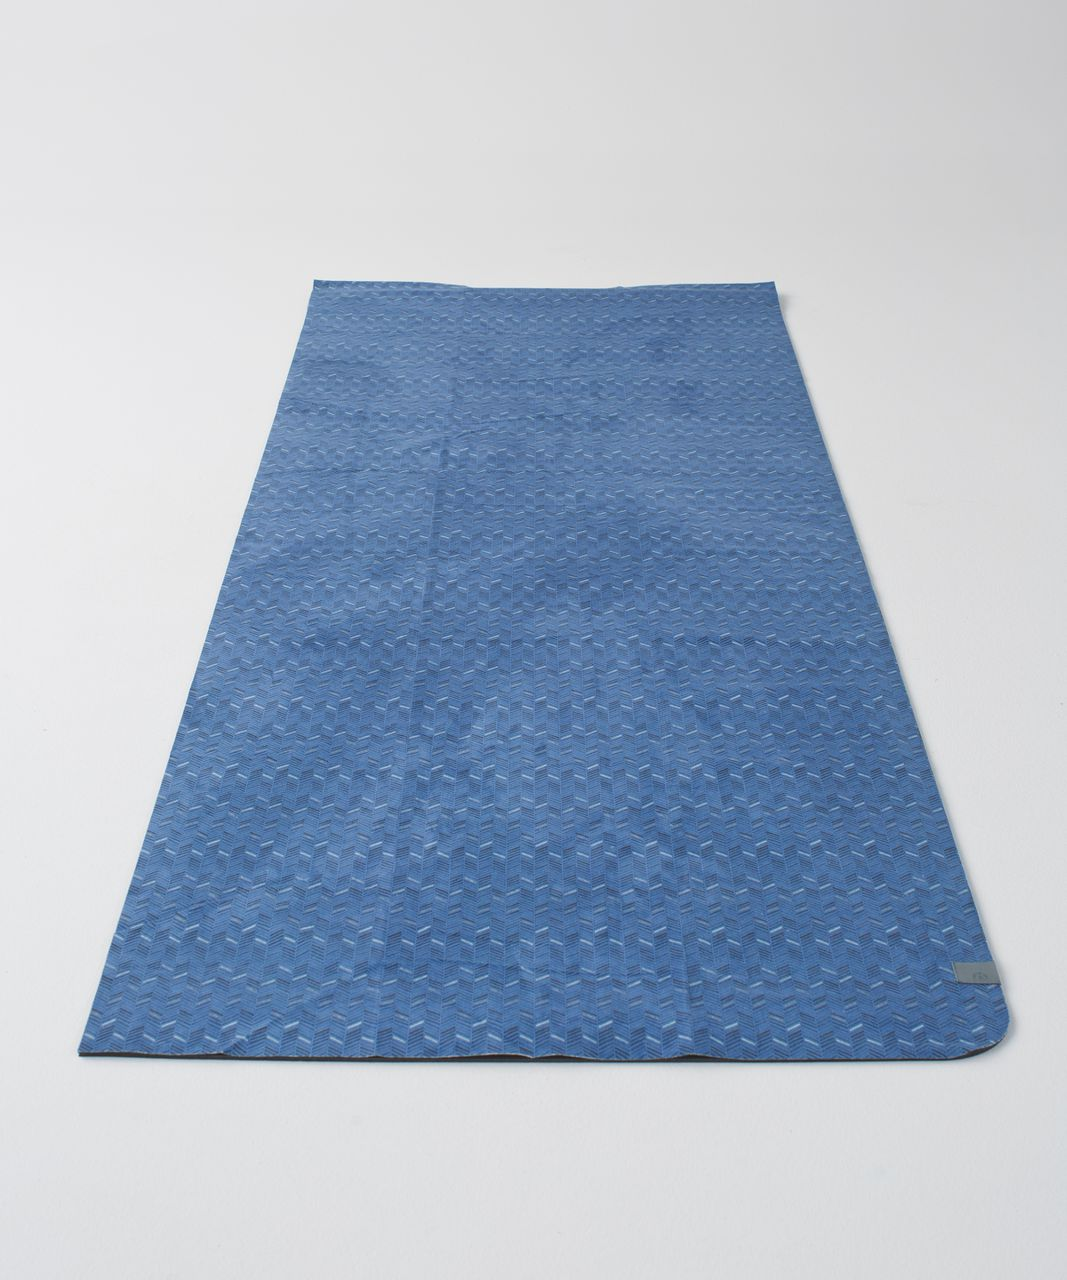 Lululemon The (Big) Towel - Small Sketchy Herringbone Lux Indigo Classic Navy